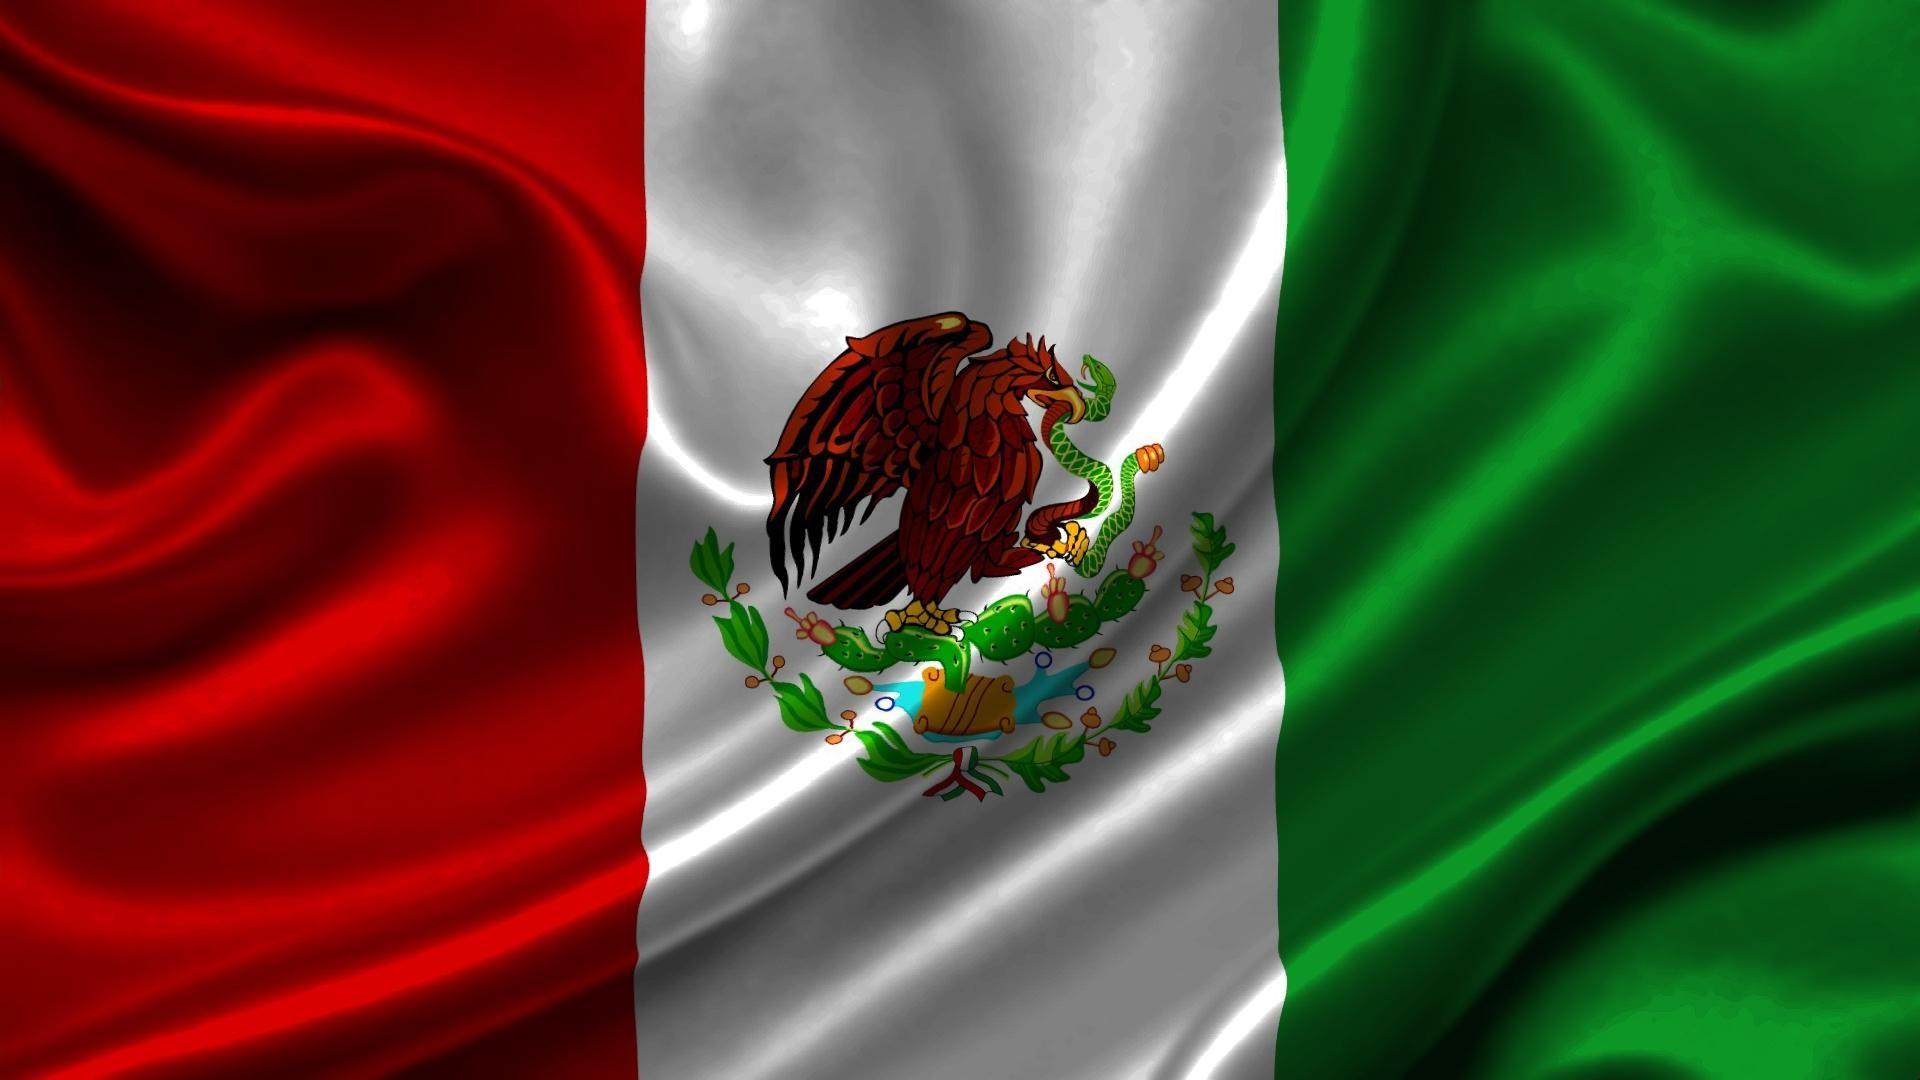 mexico flag wallpaper (54+ images)